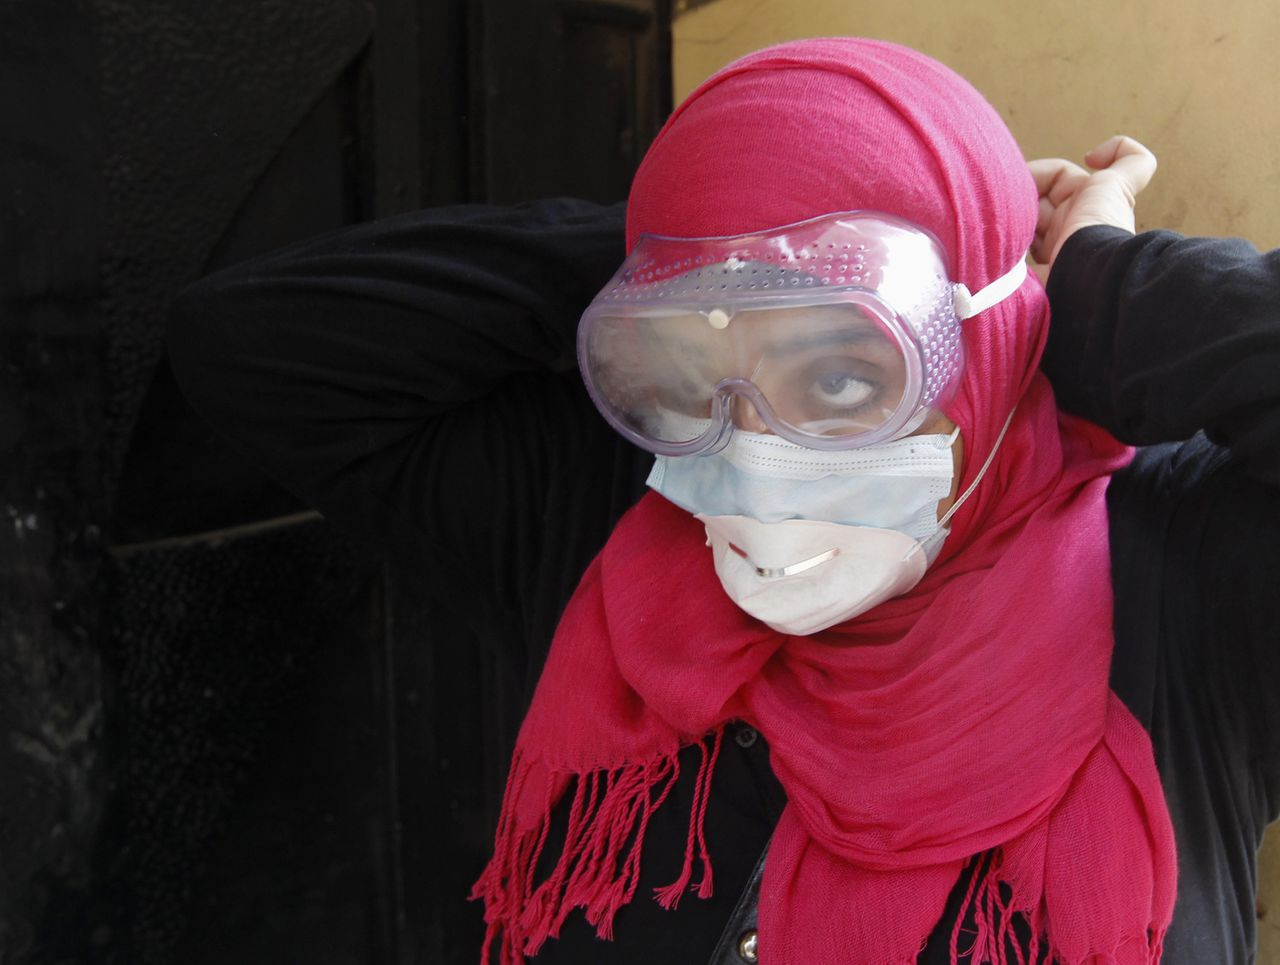 A female protester adjusts protective gear during clashes with riot police in a side street near Tahrir Square in Cairo November 22, 2011. REUTERS/Goran Tomasevic (EGYPT - Tags: POLITICS CIVIL UNREST)